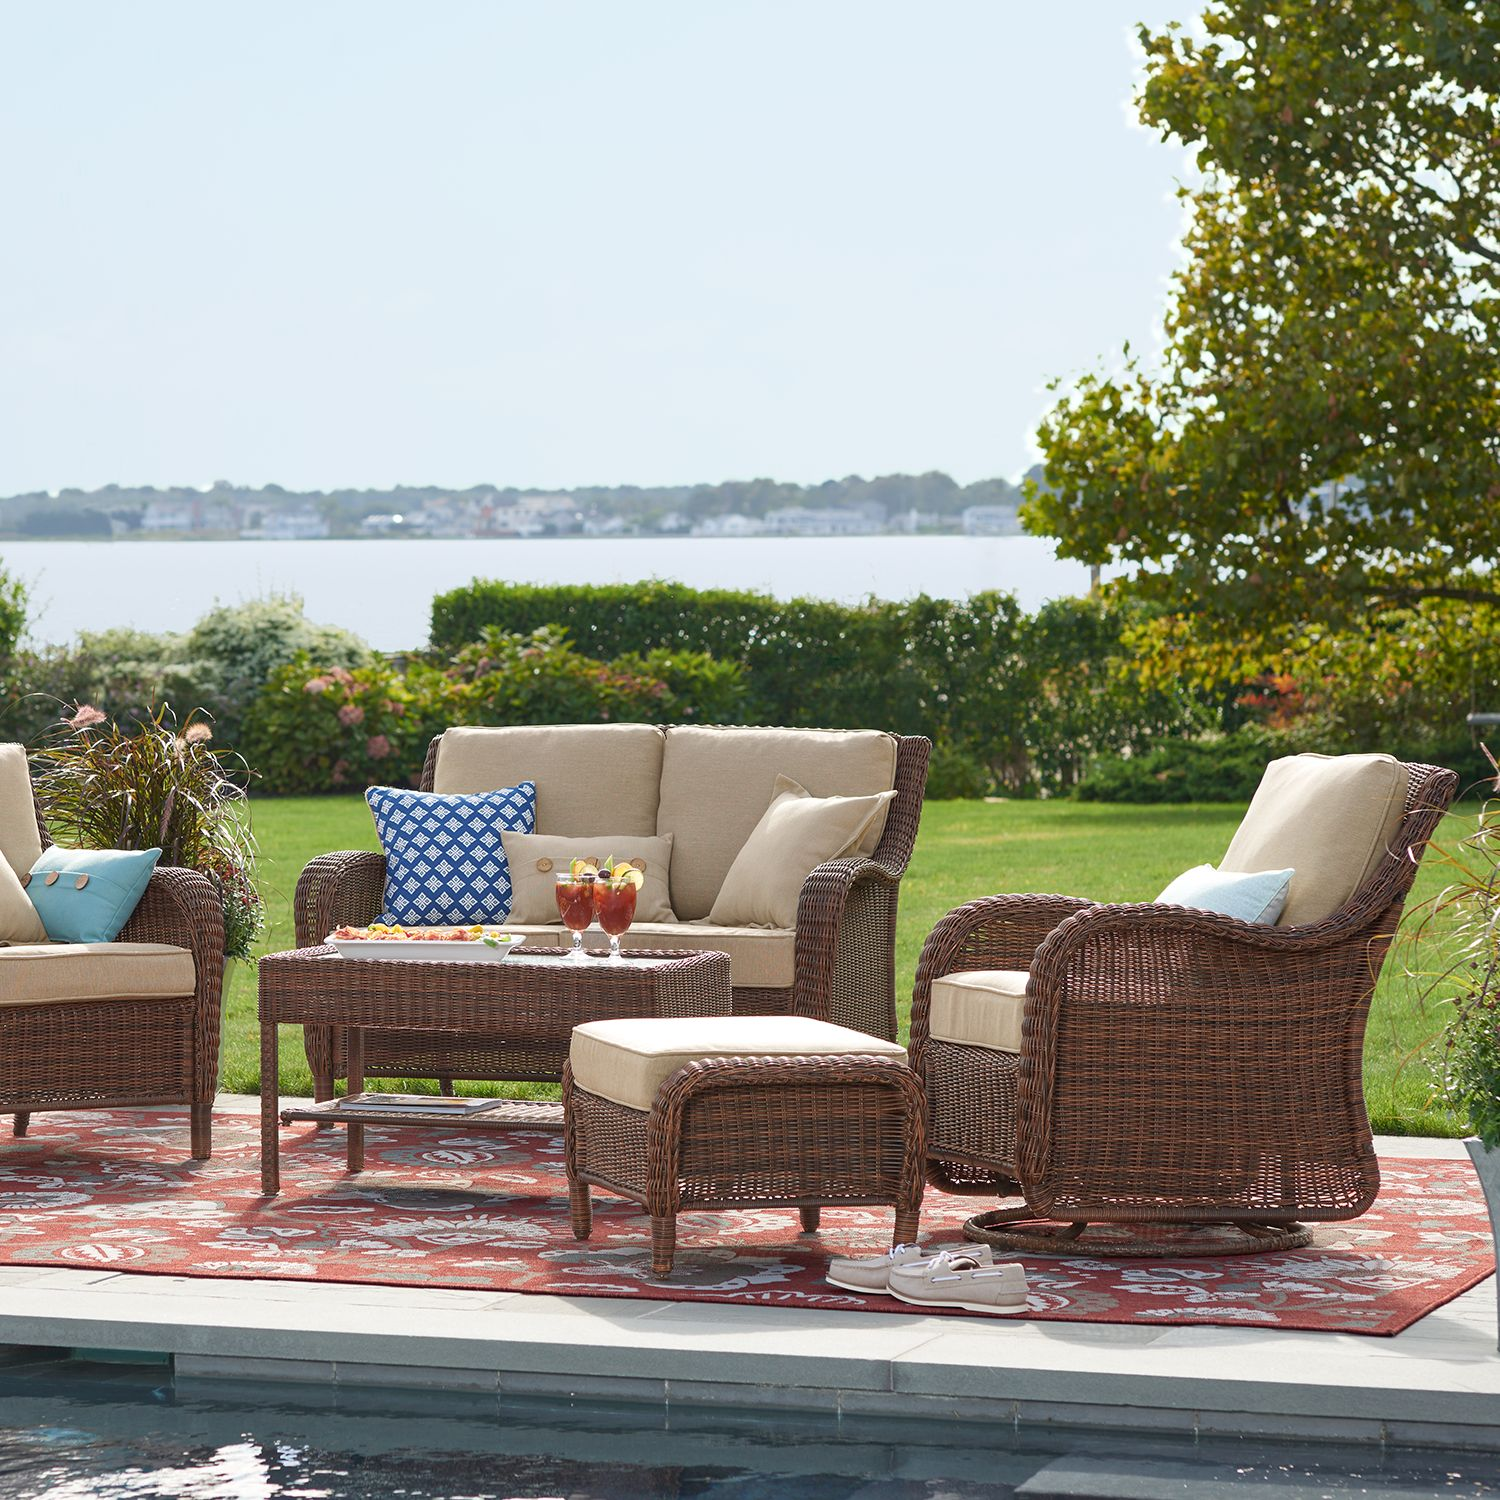 Kohls Patio Furniture at Home and Interior Design Ideas